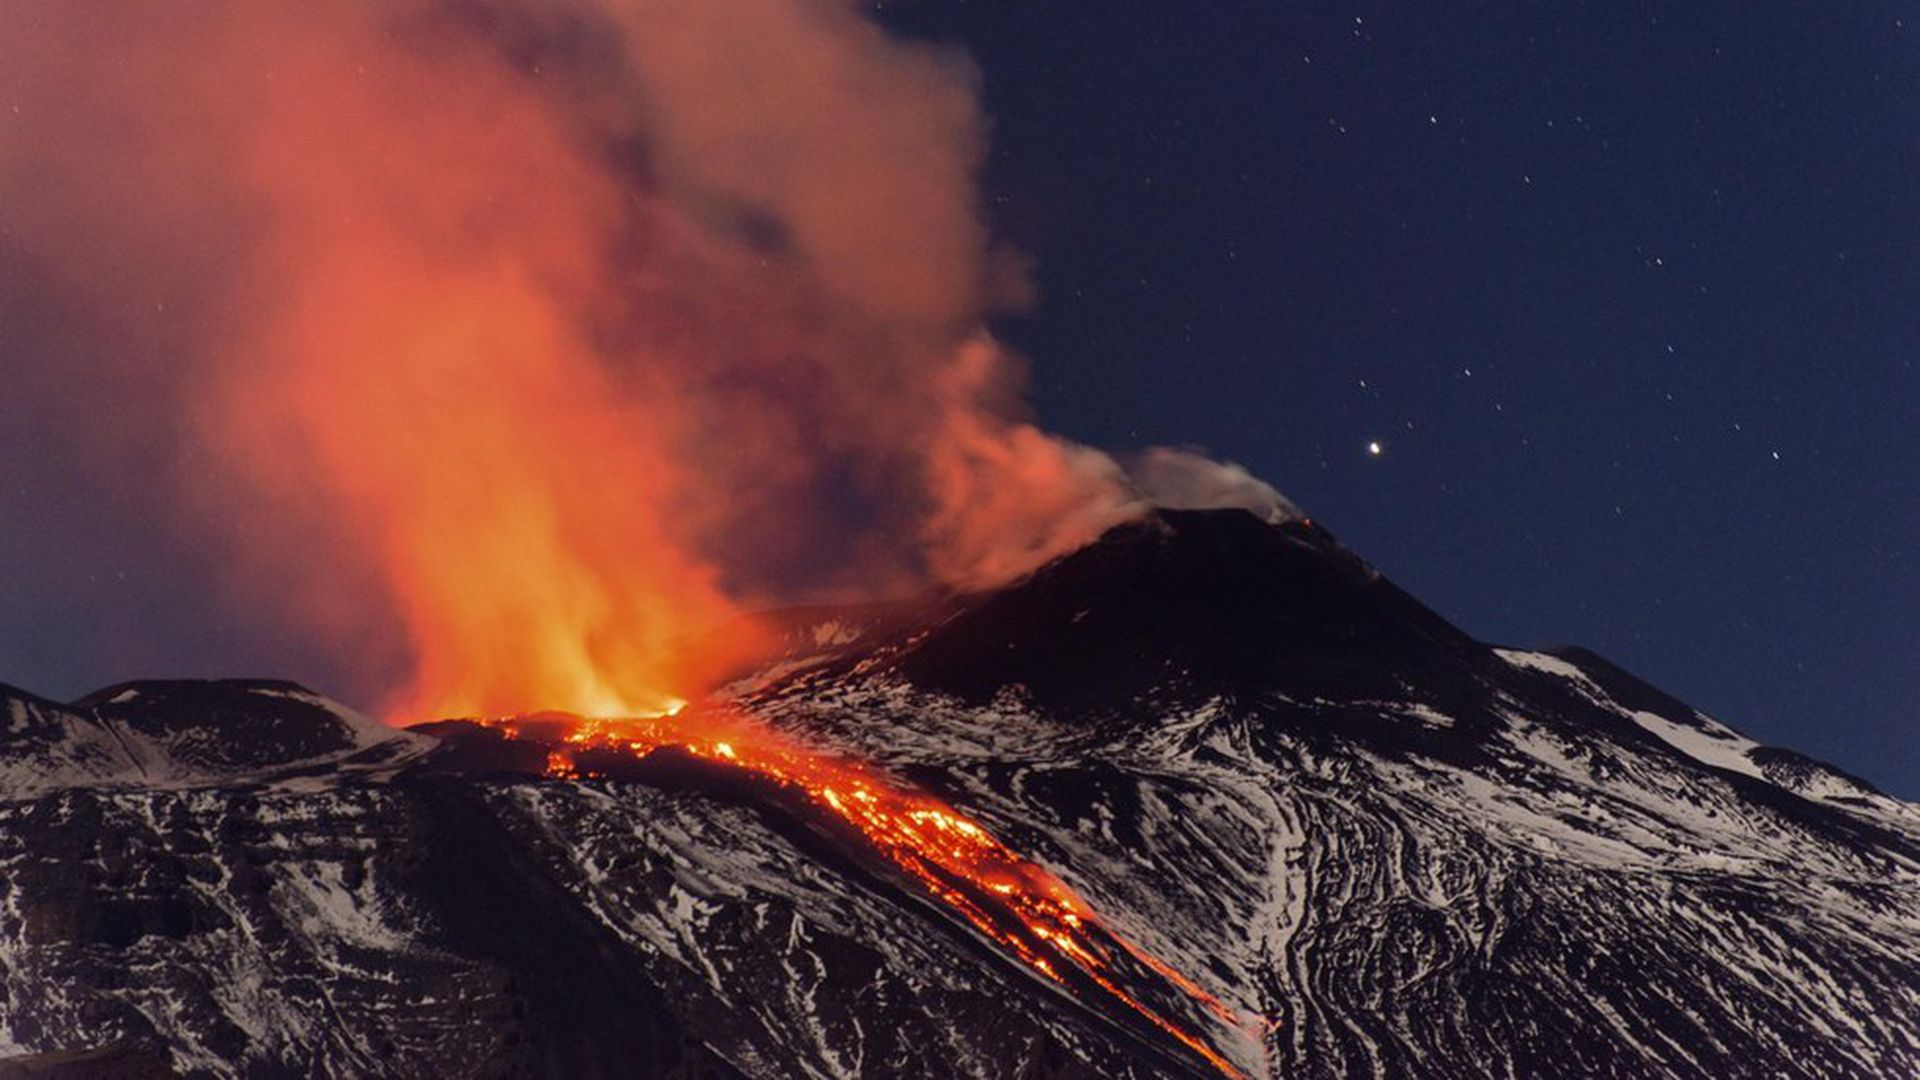 Geologists find very hot lava flowed on Earth in recent times